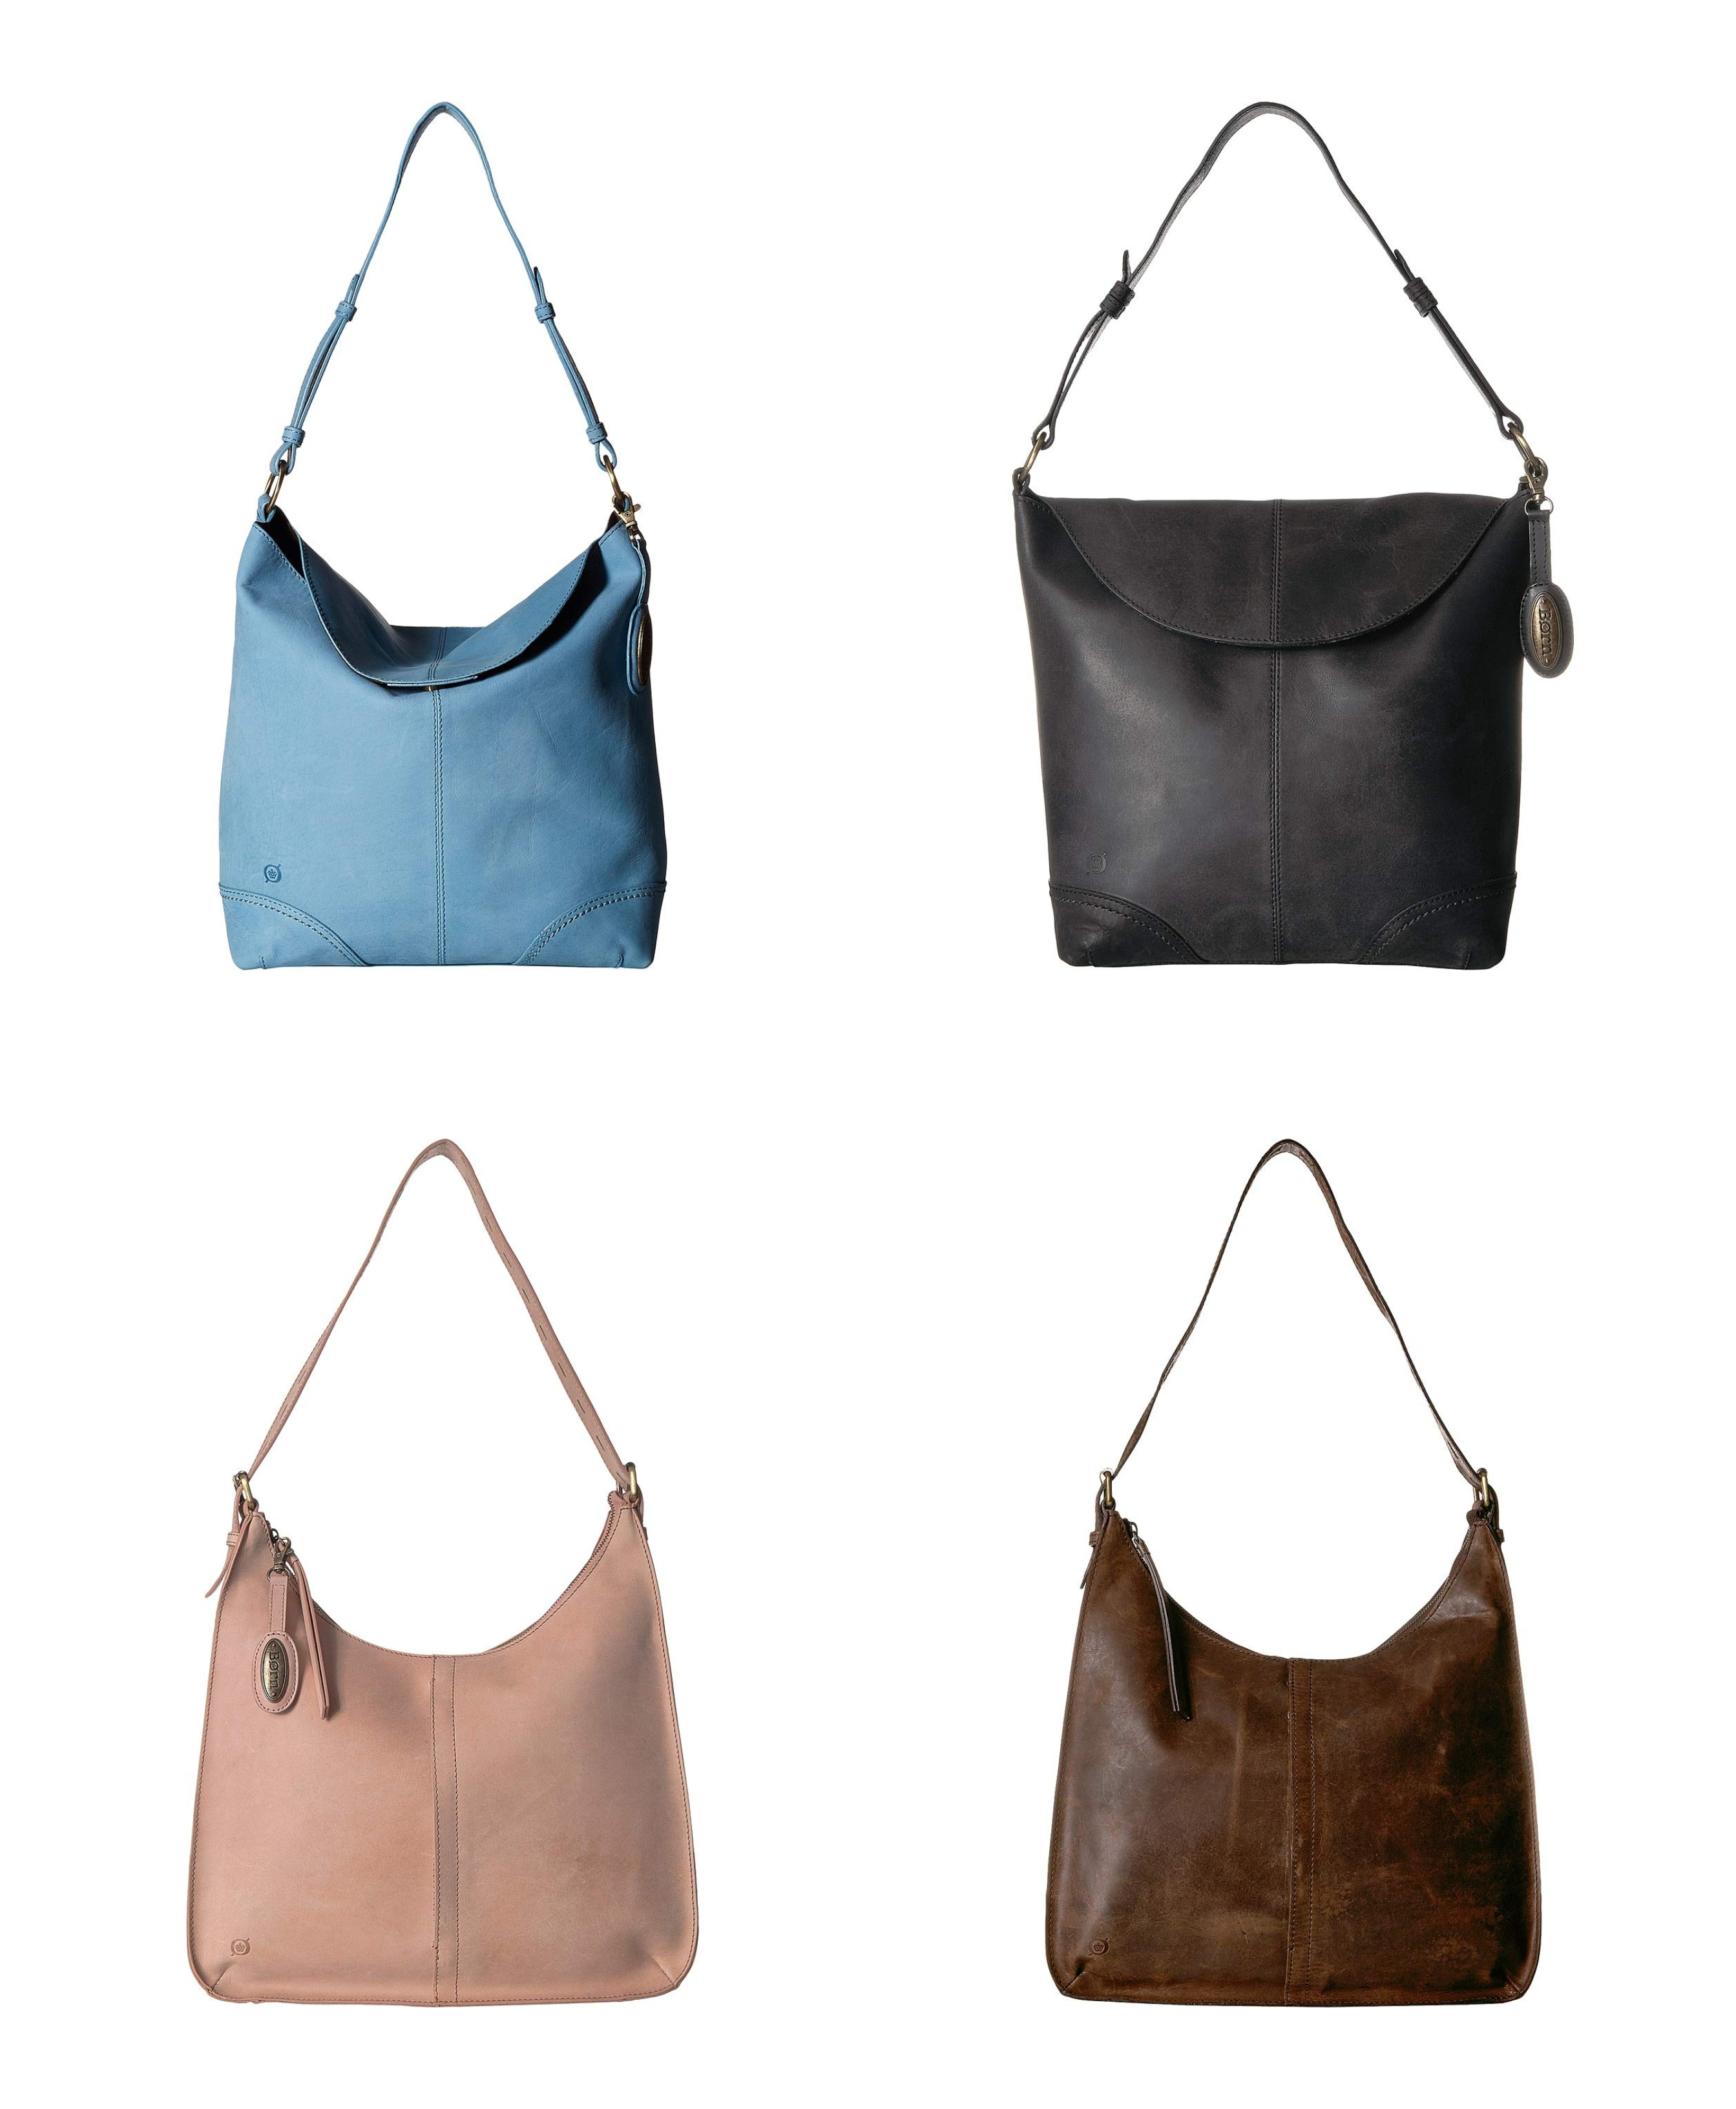 503c9396493 Zappos  Save 55% Off Born Handbags + Free Shipping! – Wear It For Less